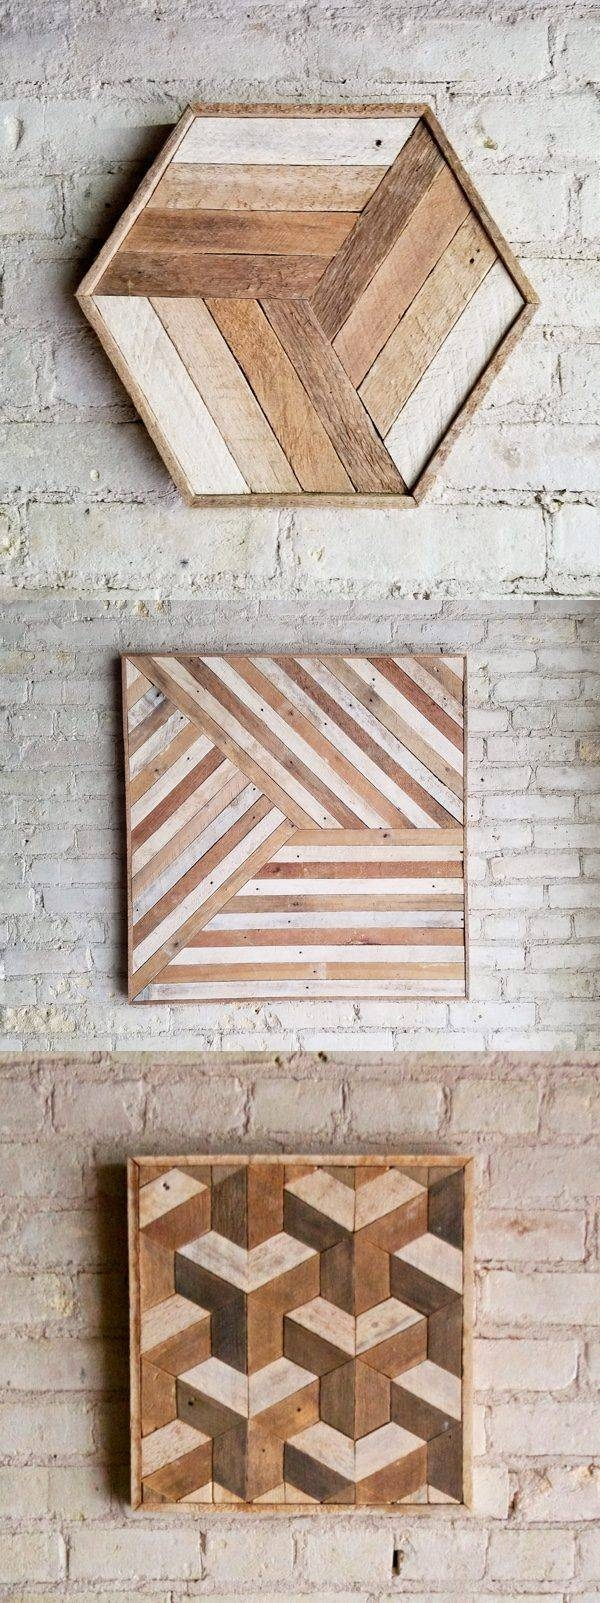 Best 25+ Wood Wall Art Ideas On Pinterest | Wood Art, Geometric For Best And Newest Wall Art On Wood (View 5 of 20)